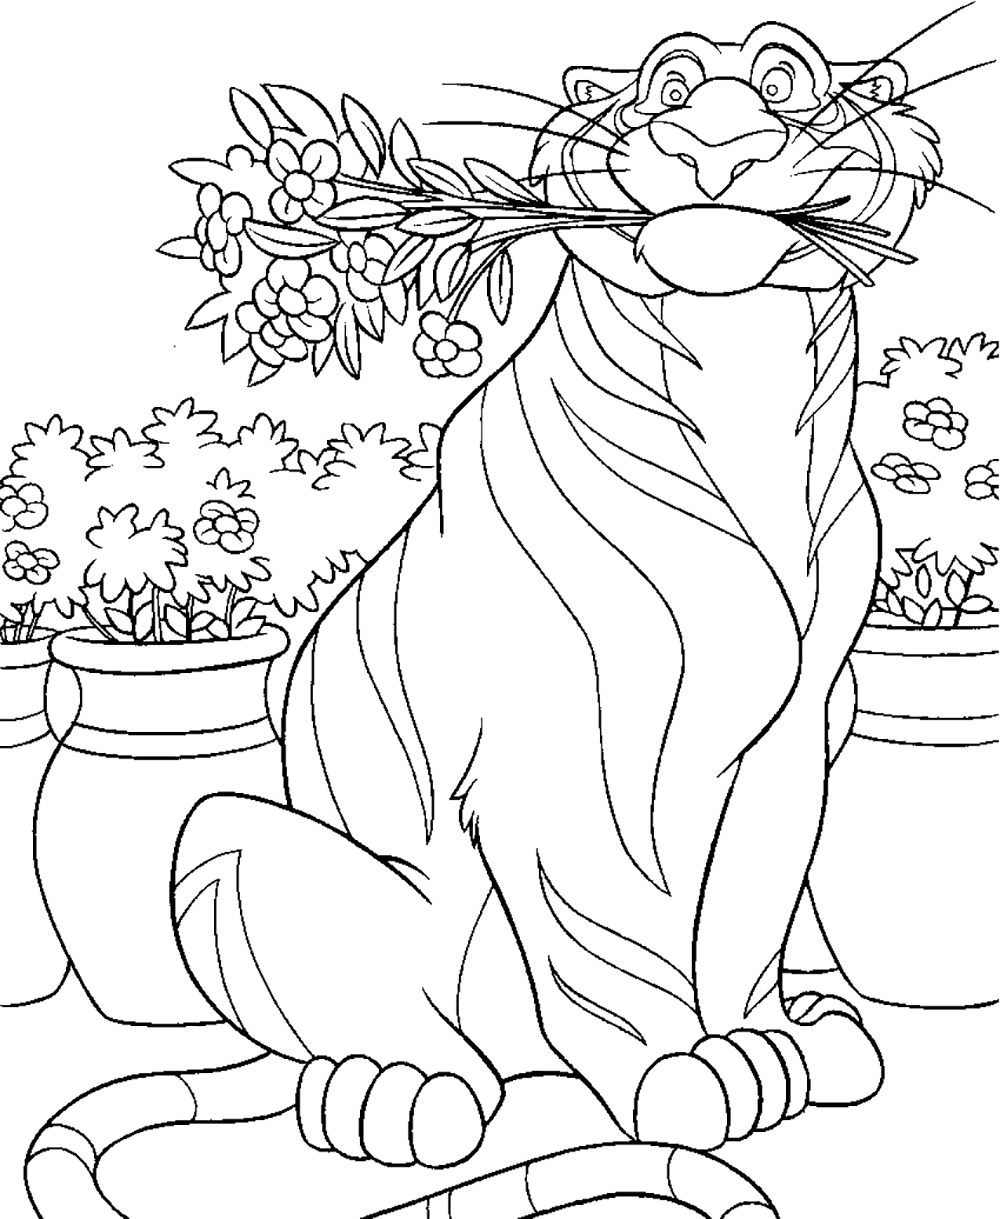 Aladdin Disney Ausmalbilder : Aladdin Rajah Big Aladdin Coloring Pages Pinterest Kids Net